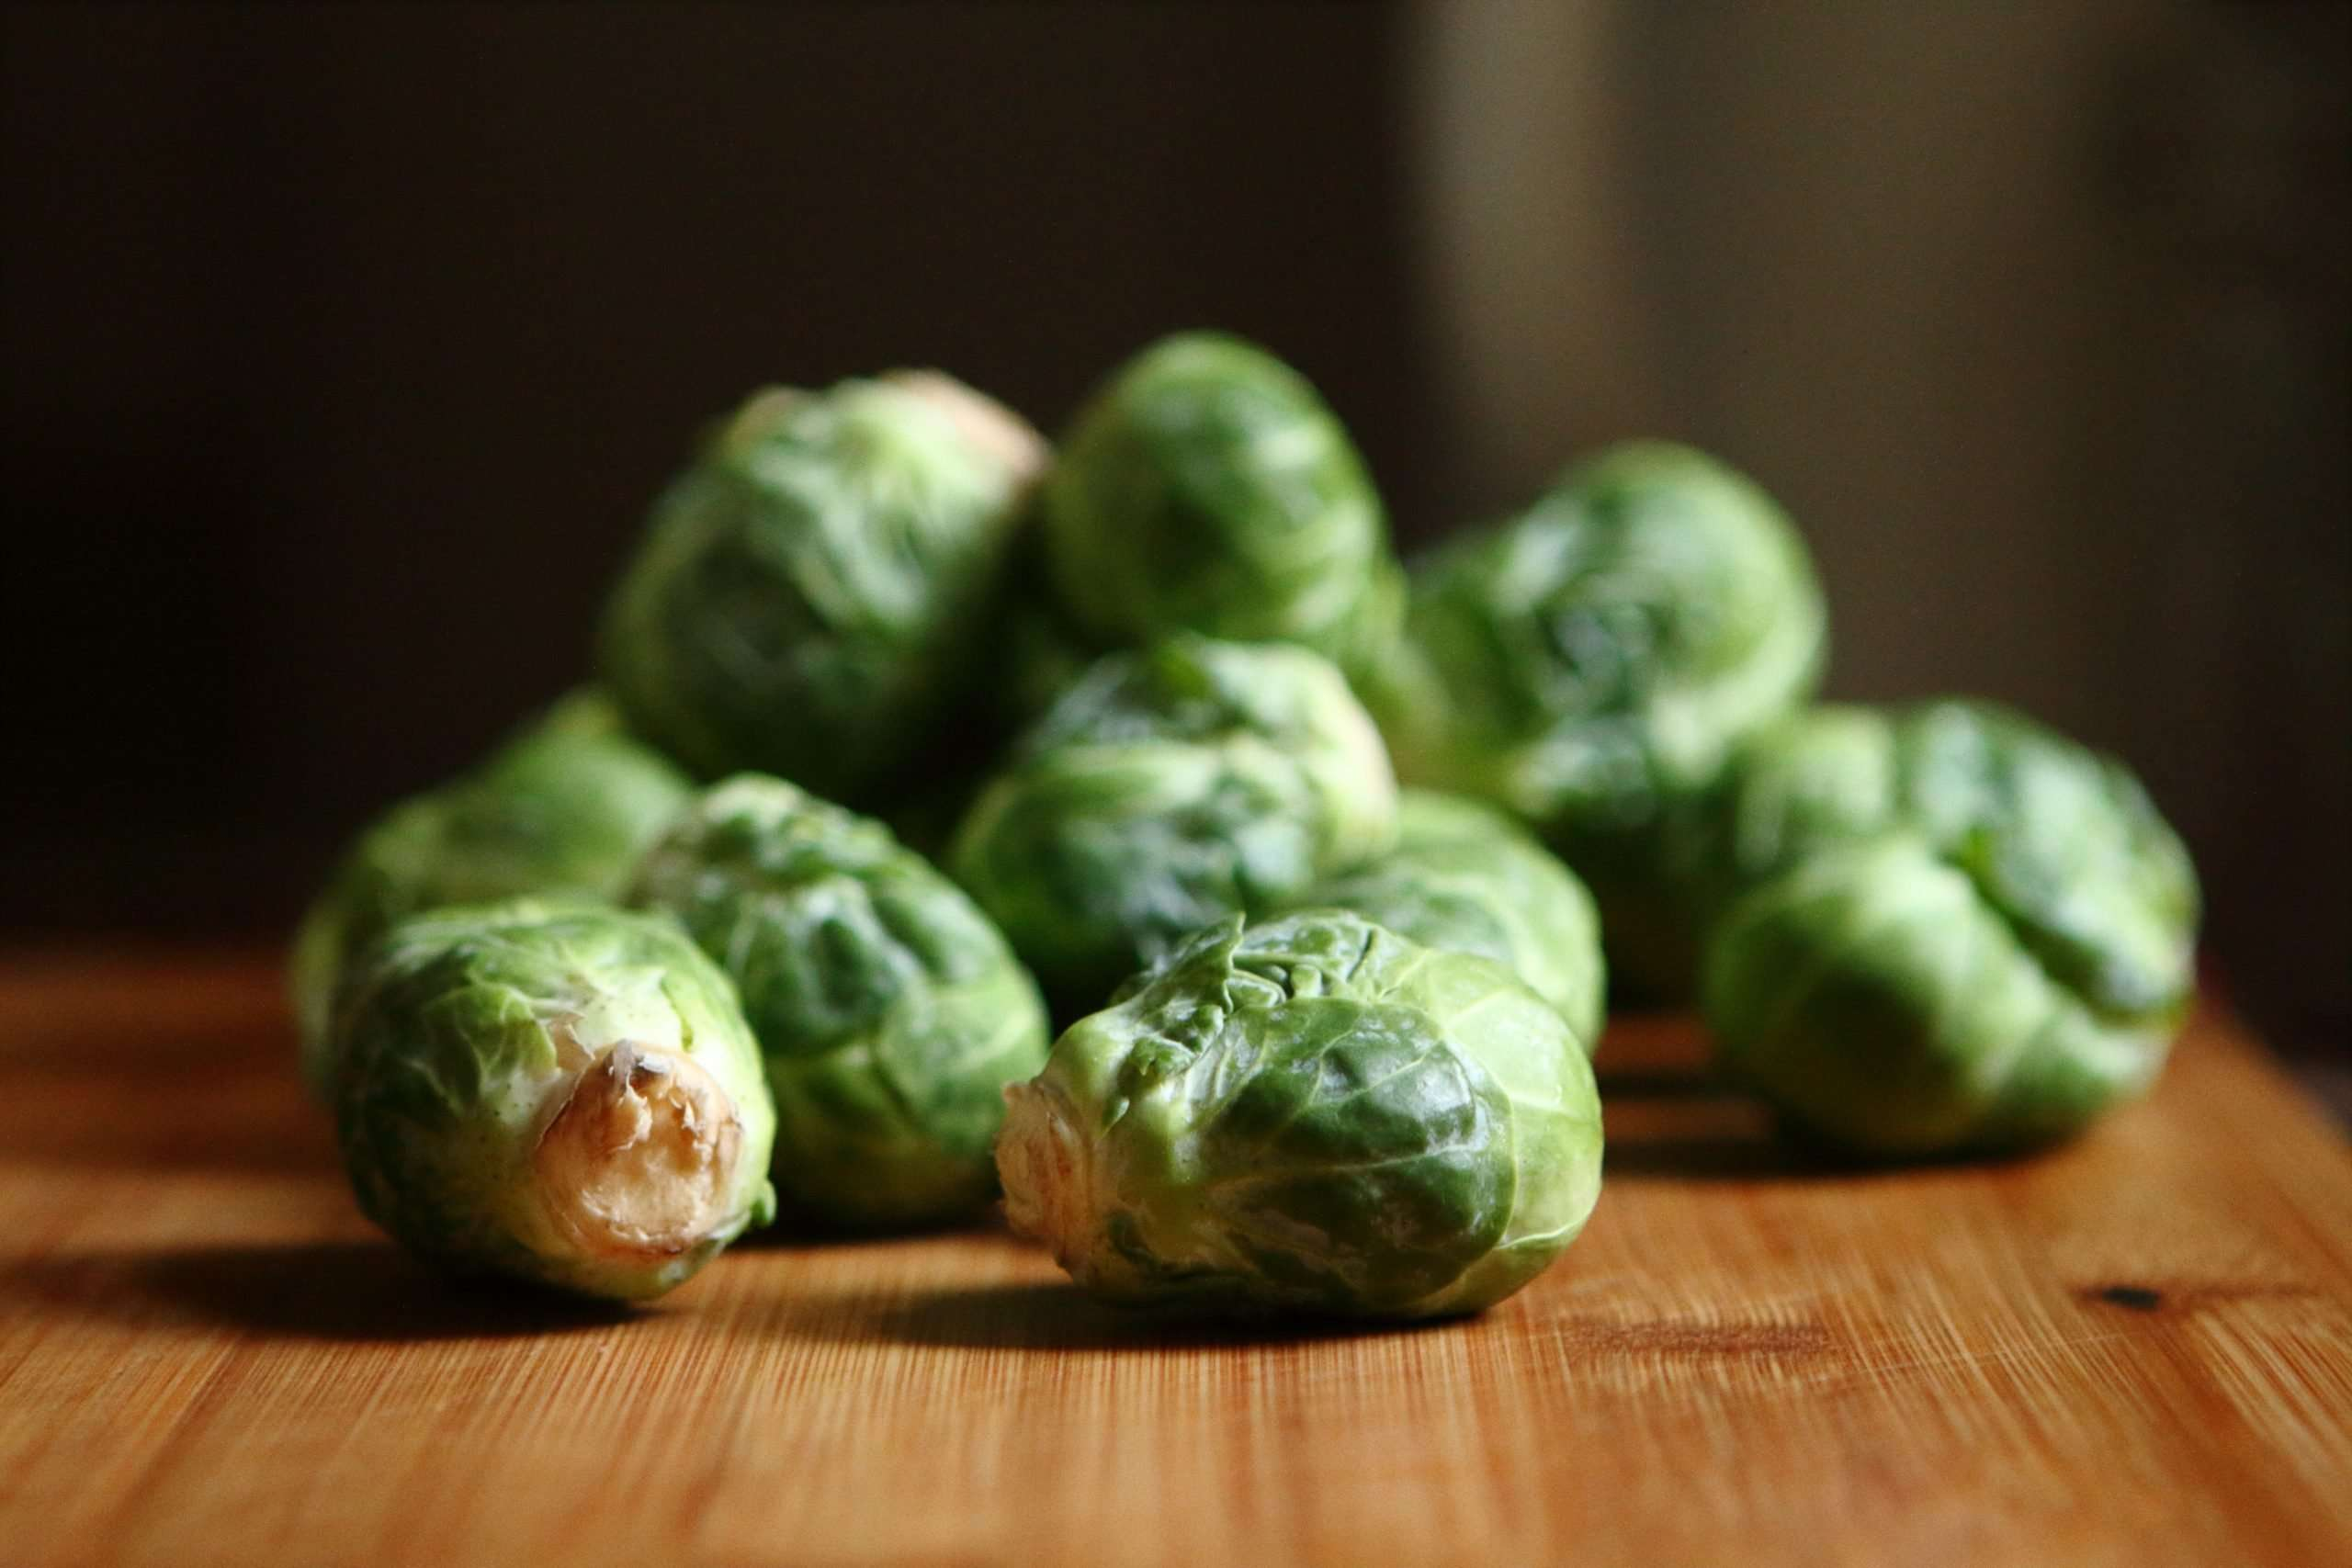 Close up of Brussel Sprouts on a wooden table